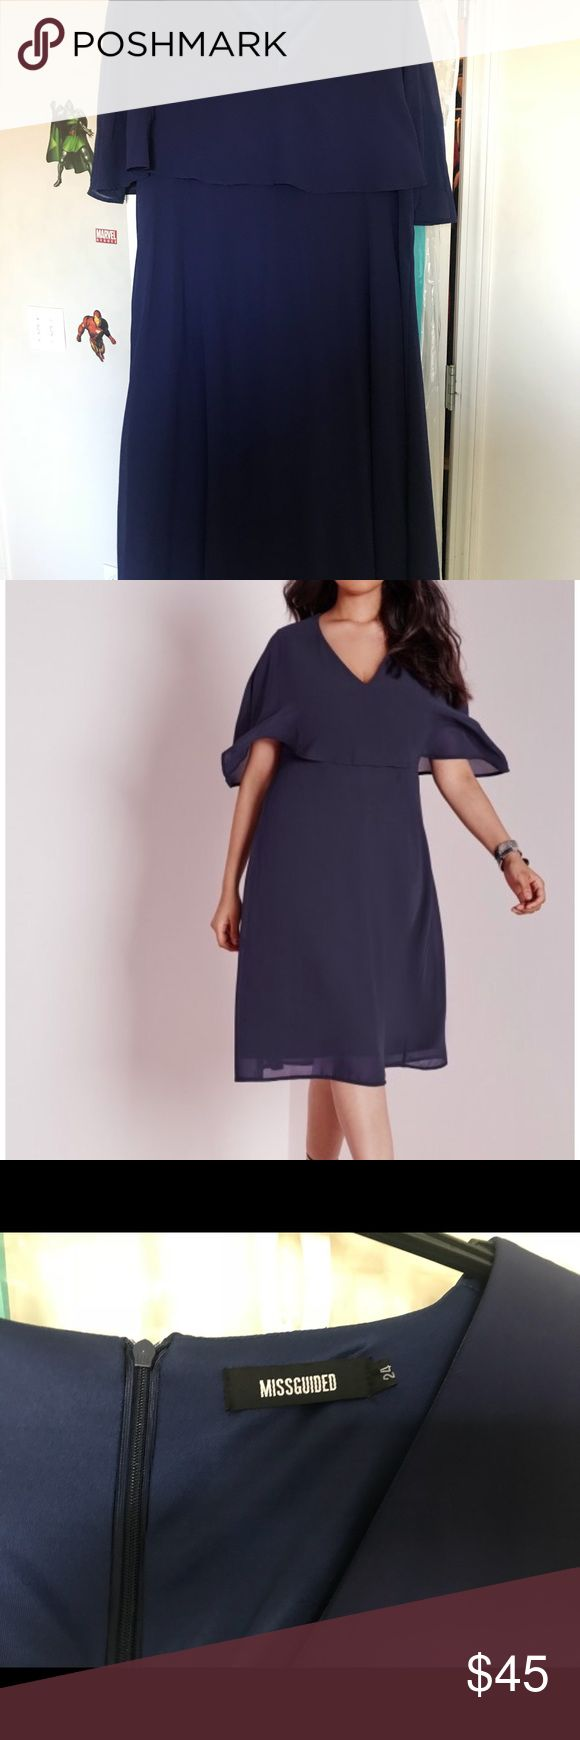 missguided navy plus size dress missguided navy plus size dress ASOS Curve Dresses Midi